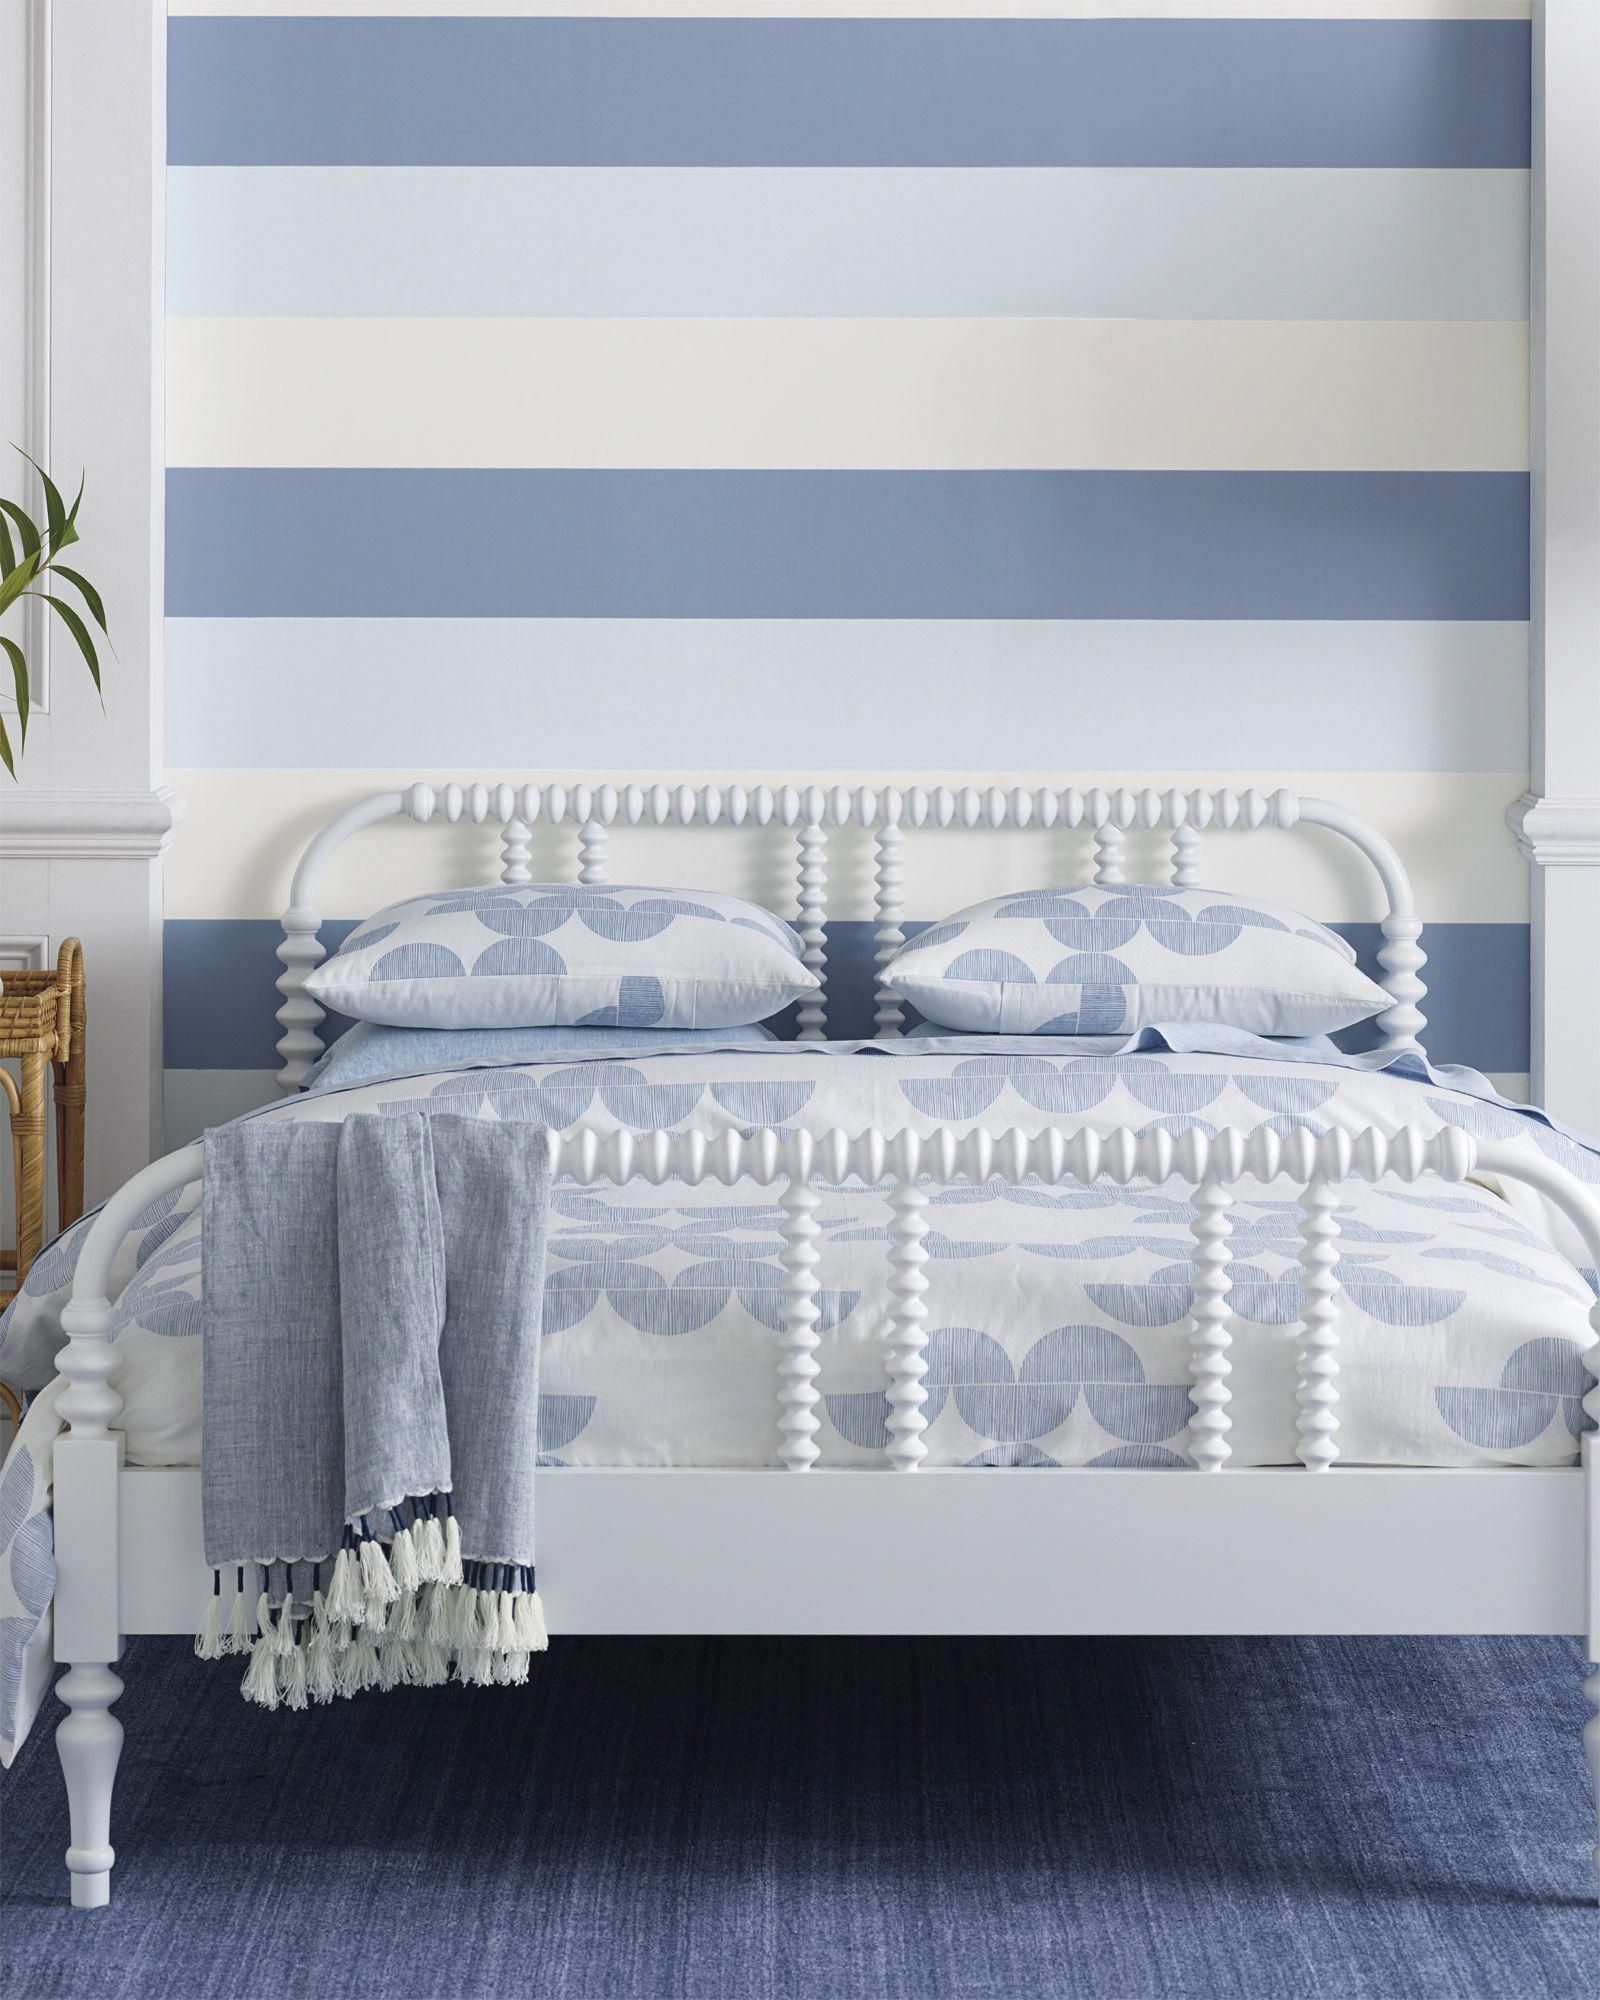 Coastal Stripe Wallpaper  Serena & Lily #Coastalcottage